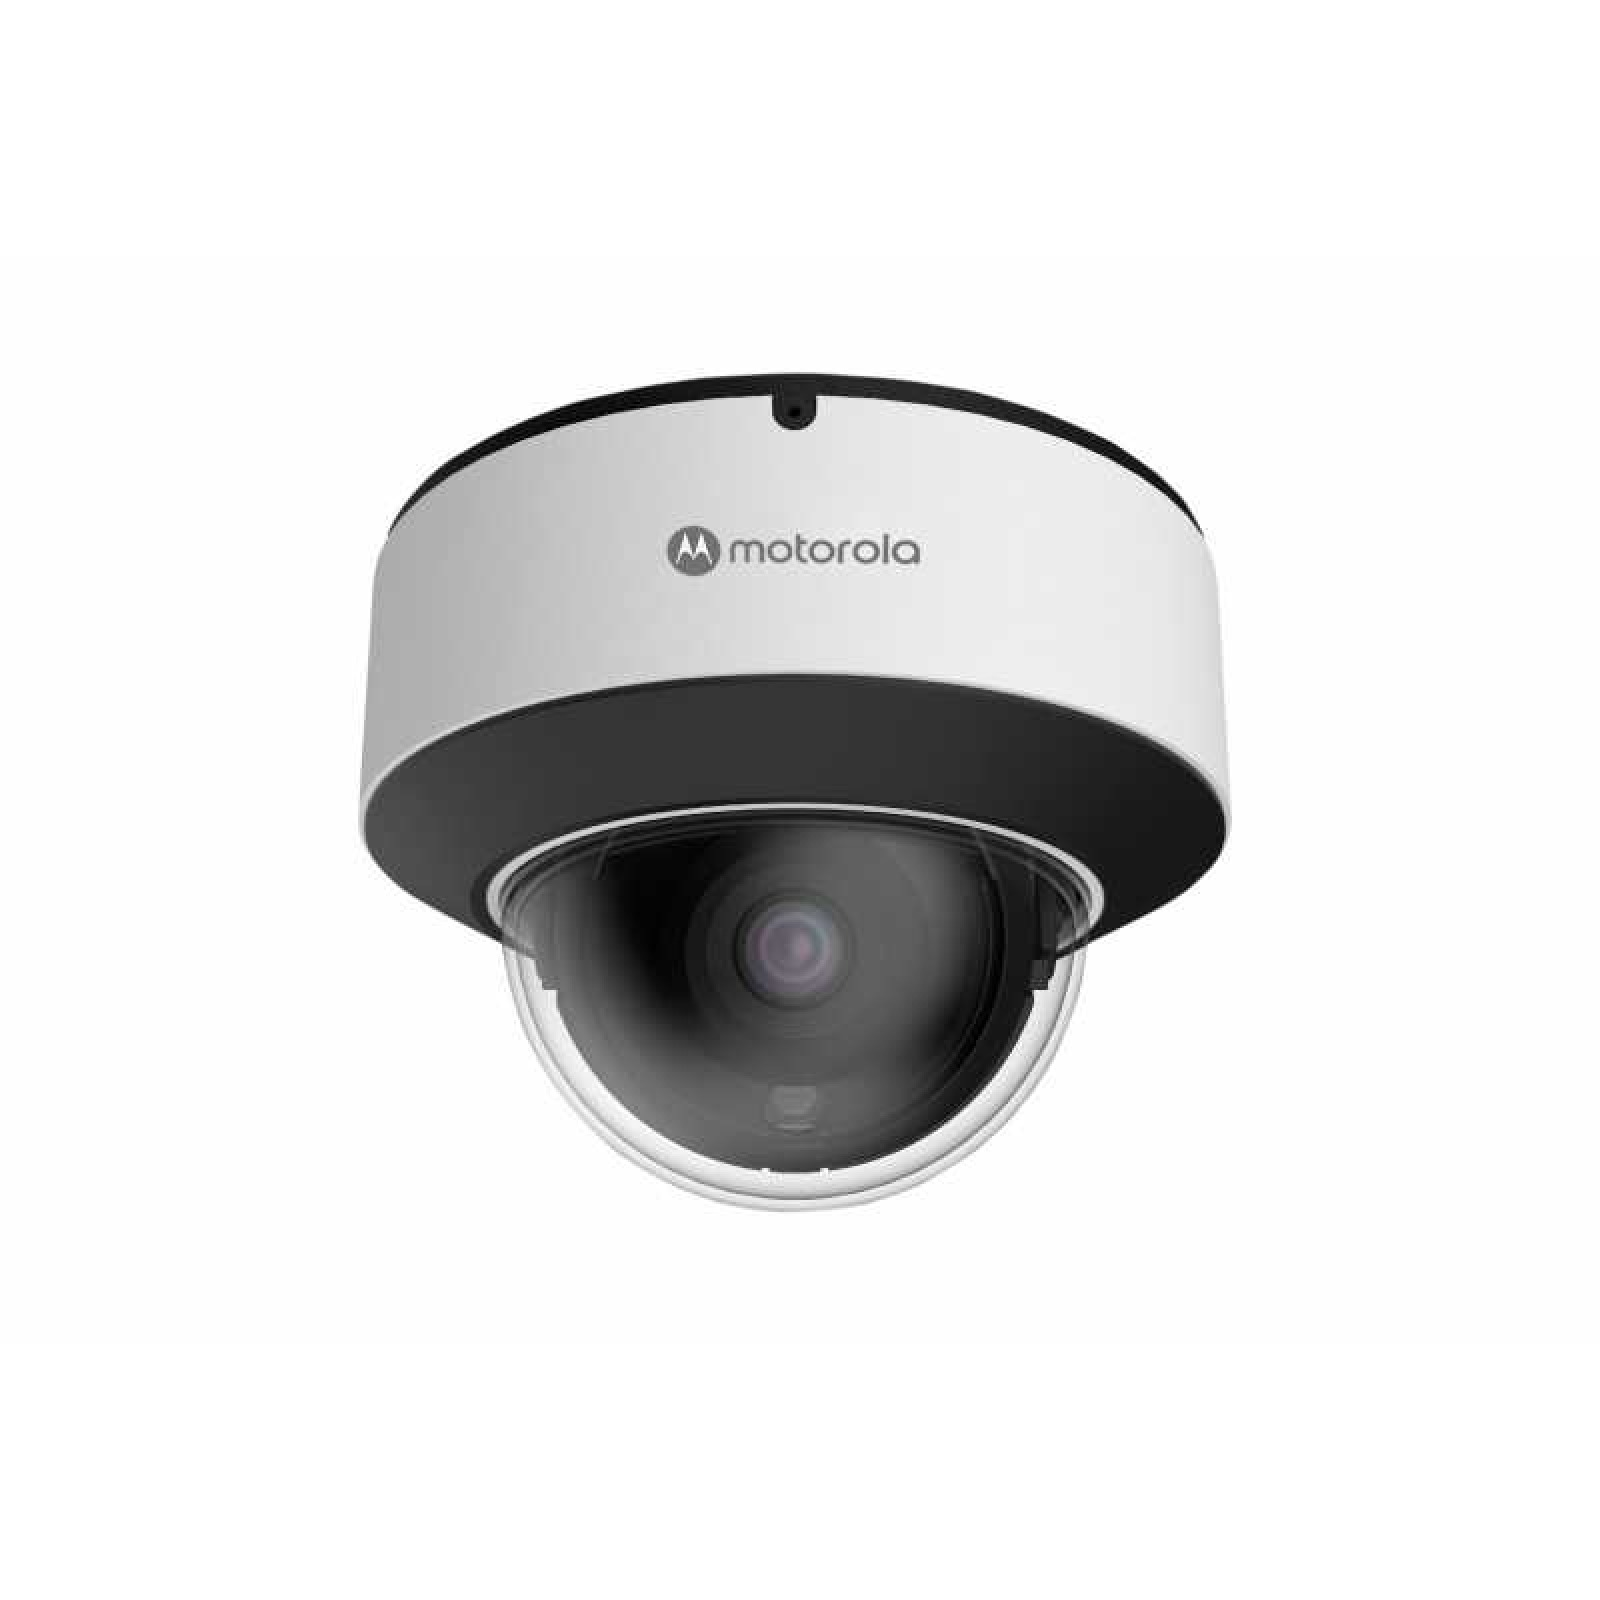 CAMERA DOME IP 30M 4MP POE MTIDM034801